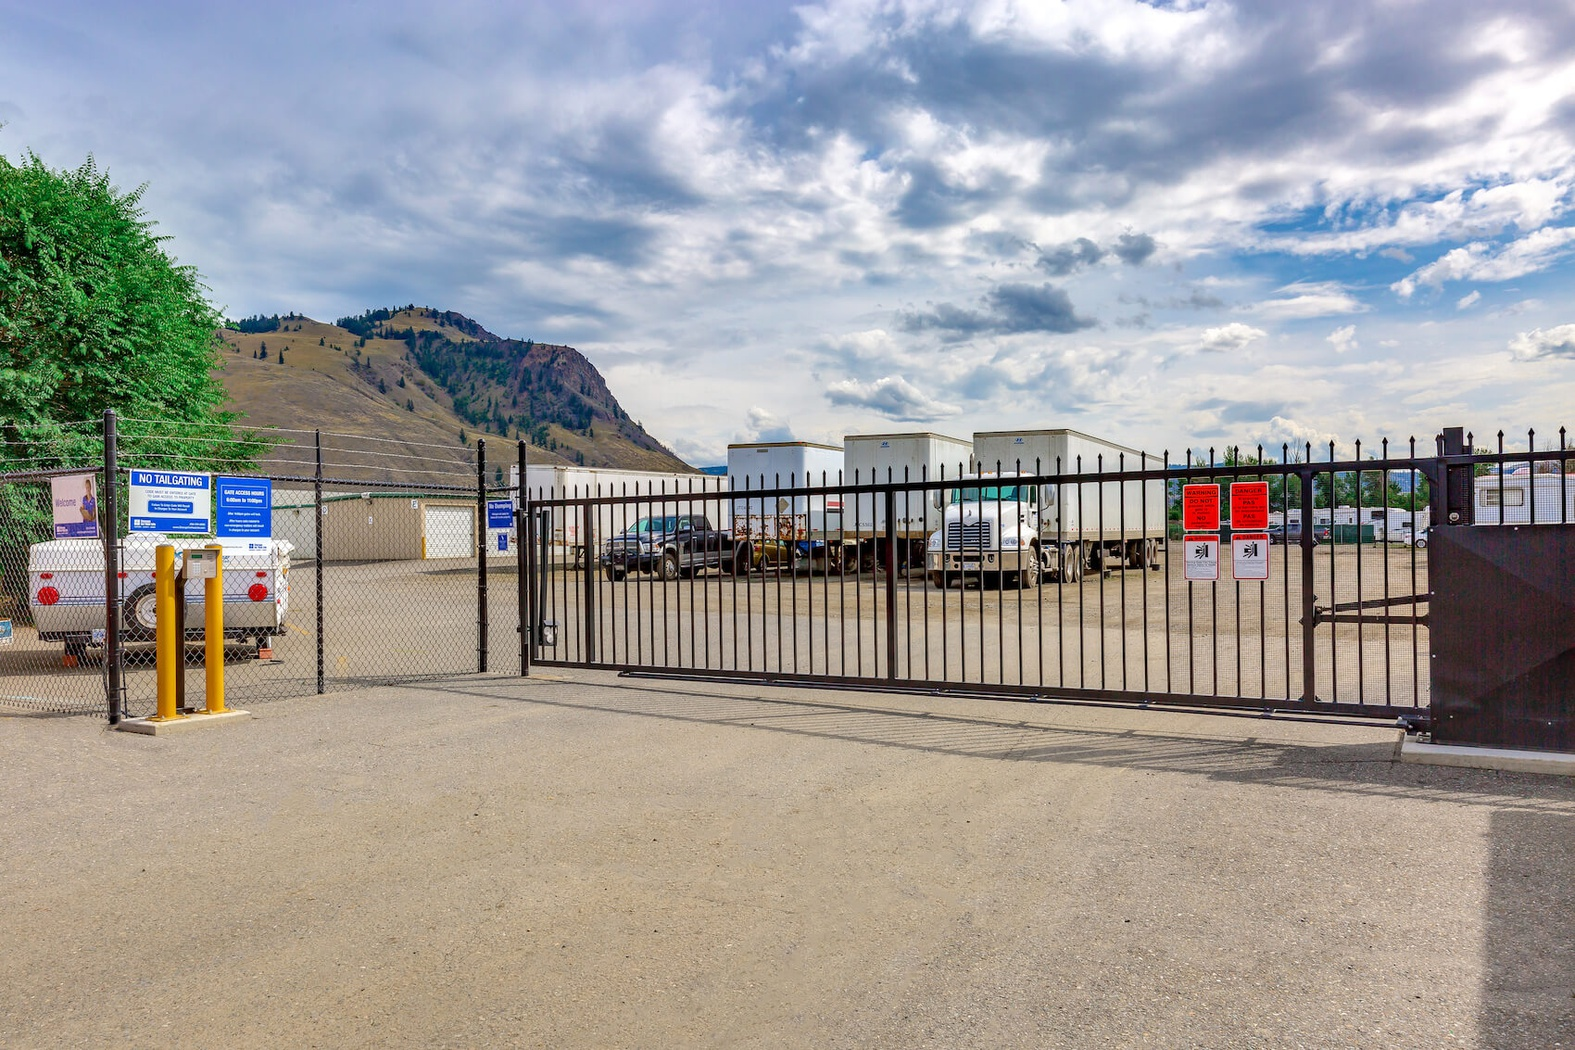 Rent Kamloops storage units at 1271 Salish Road D. We offer a wide-range of affordable self storage units and your first 4 weeks are free!